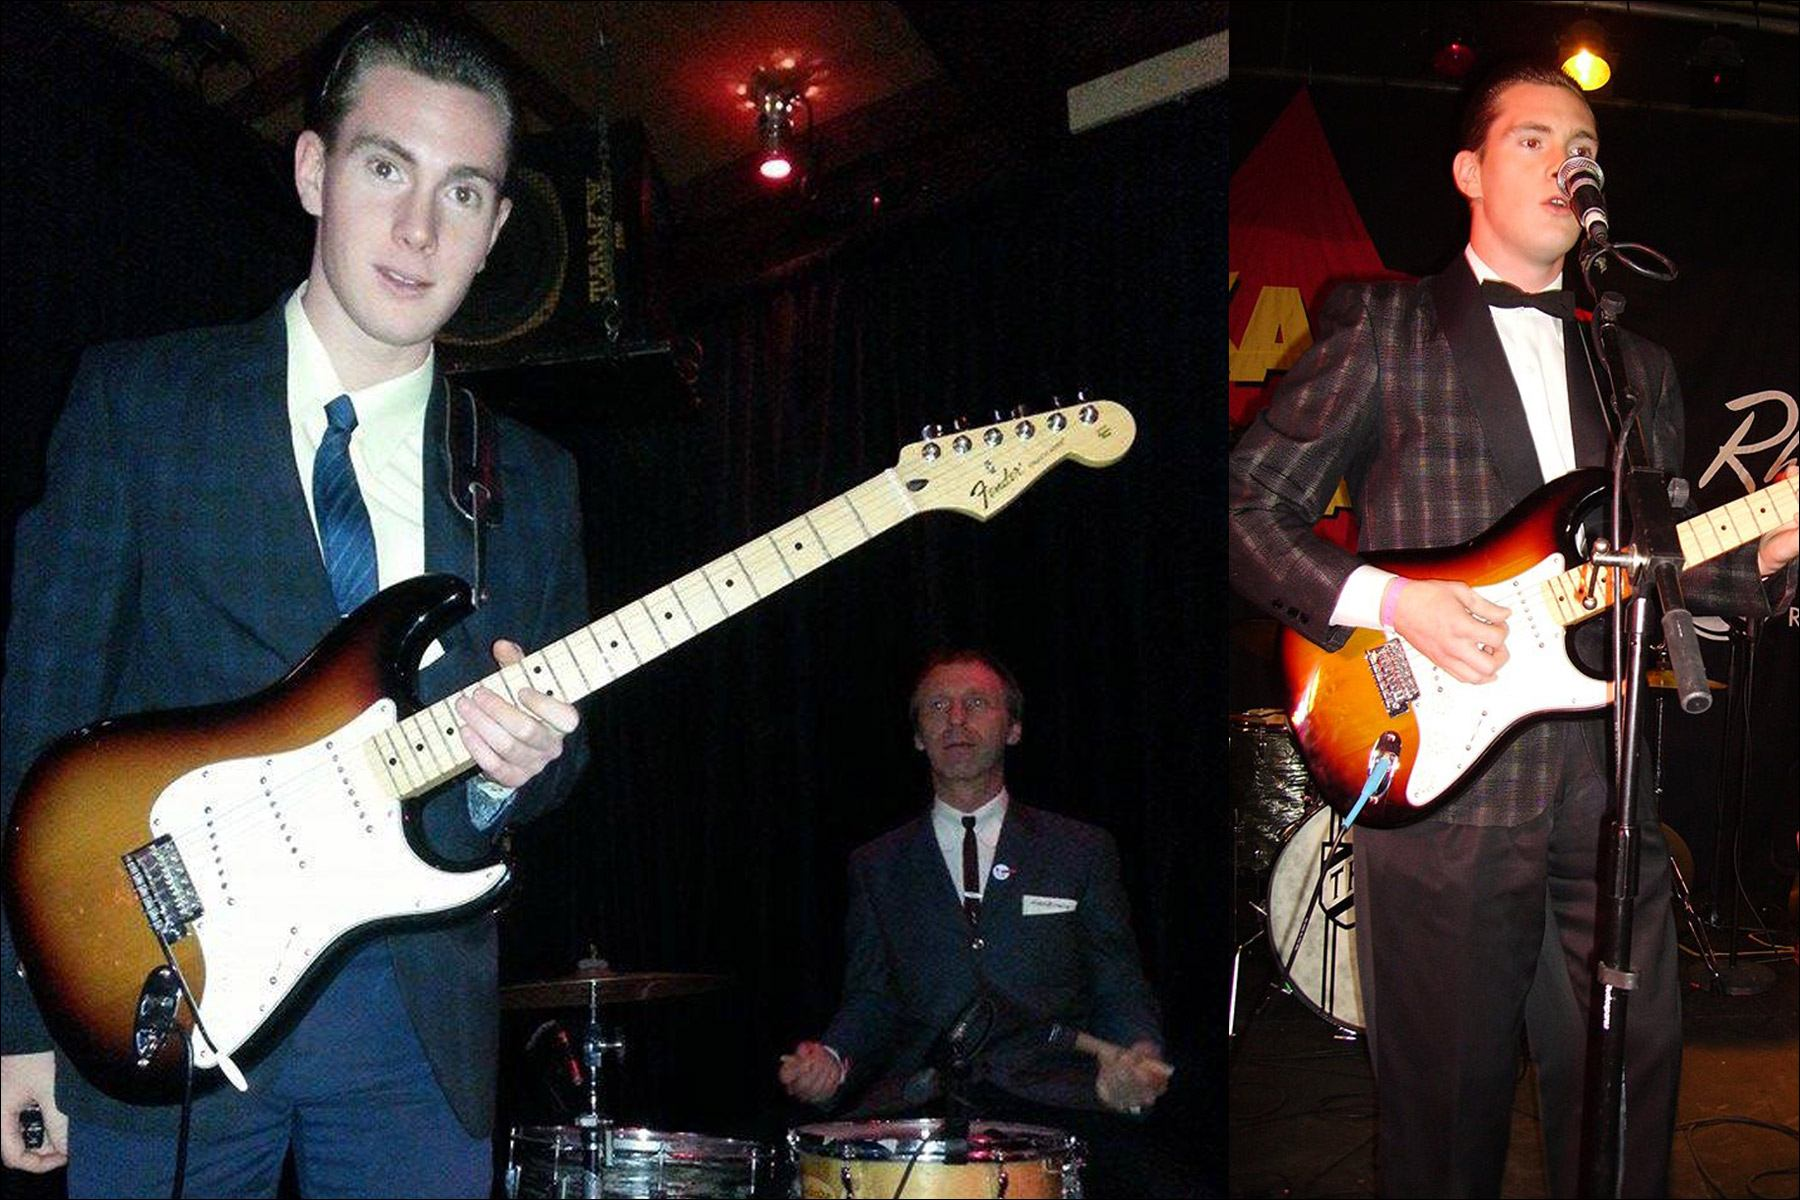 Canadian musician Lew Phillips wears formal attire onstage. Ponyboy magazine NY.